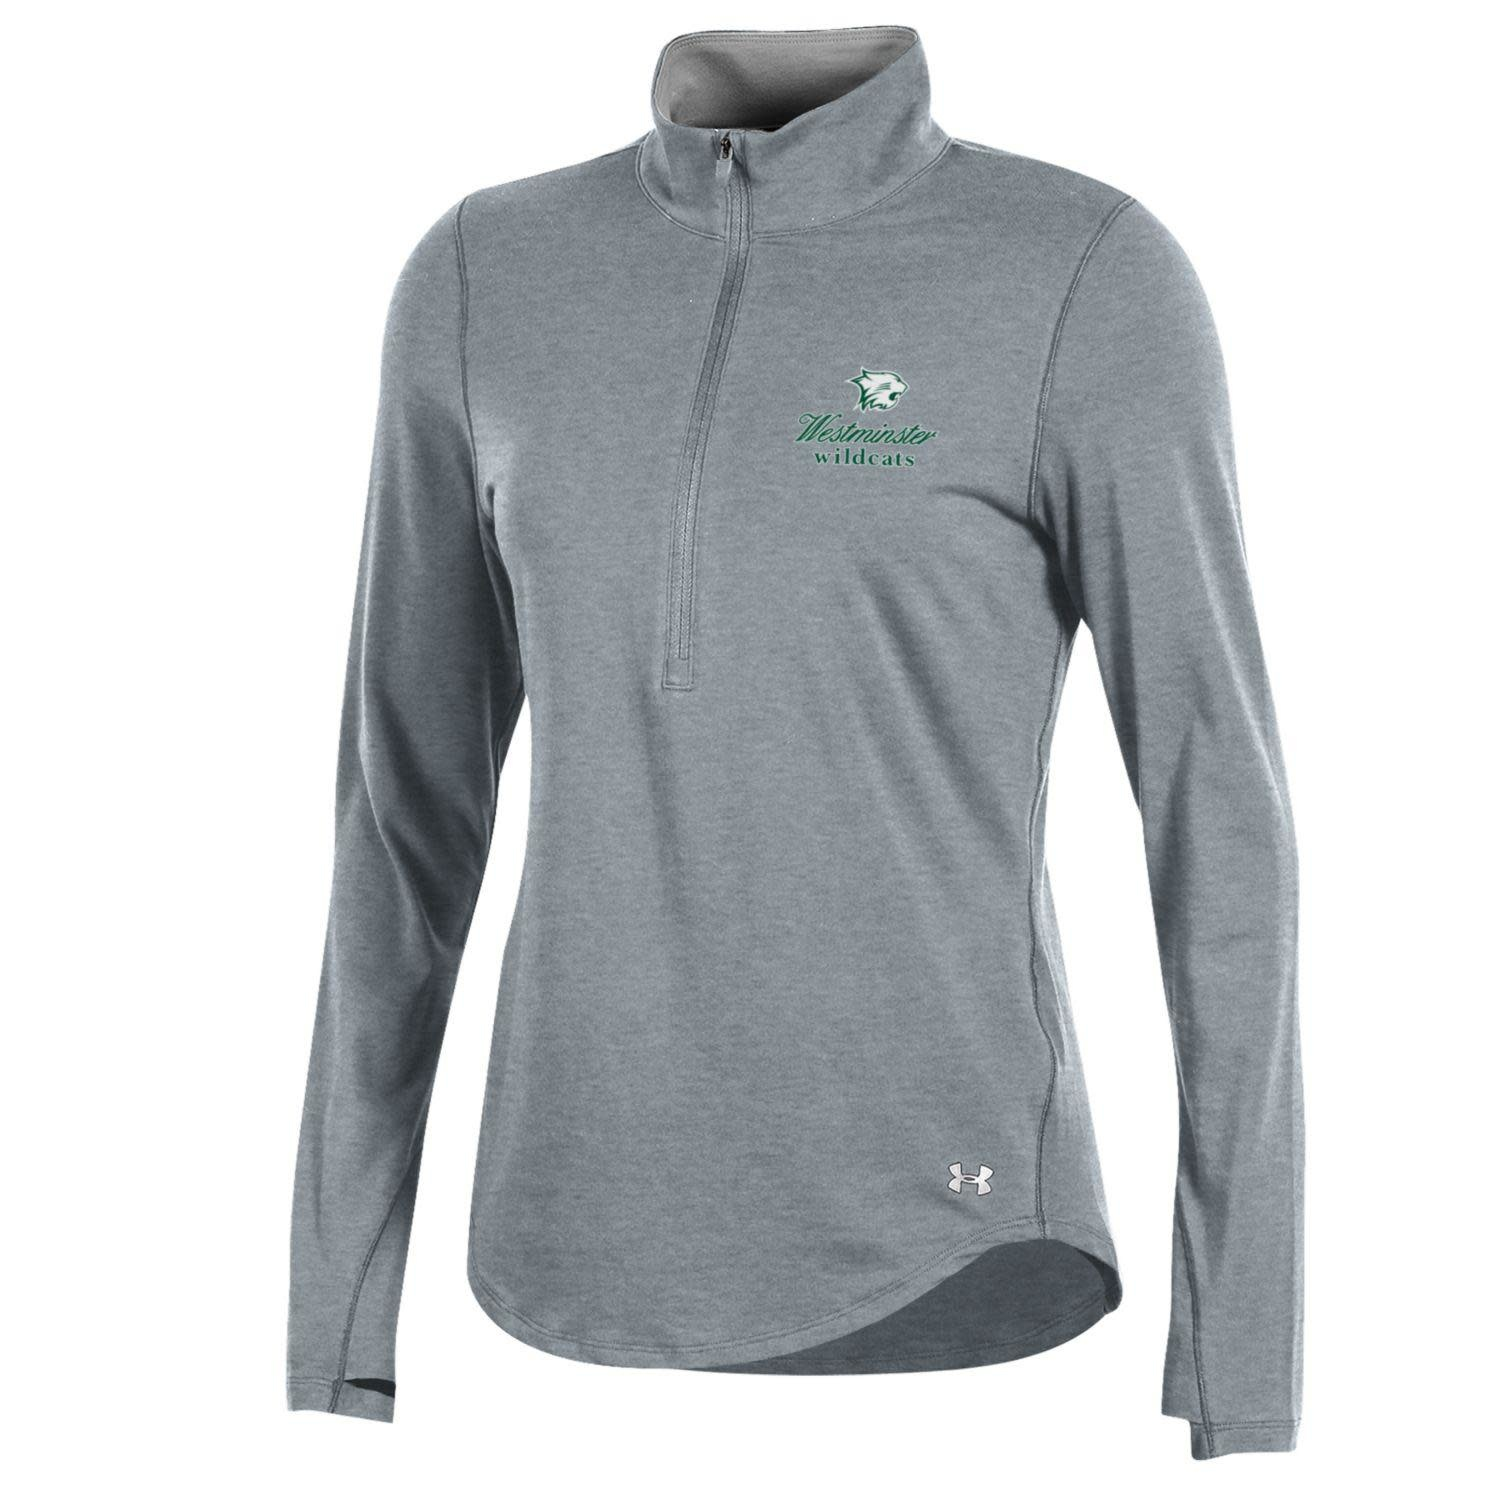 Pullover: Women's 1/4 Zip Charged Cotton